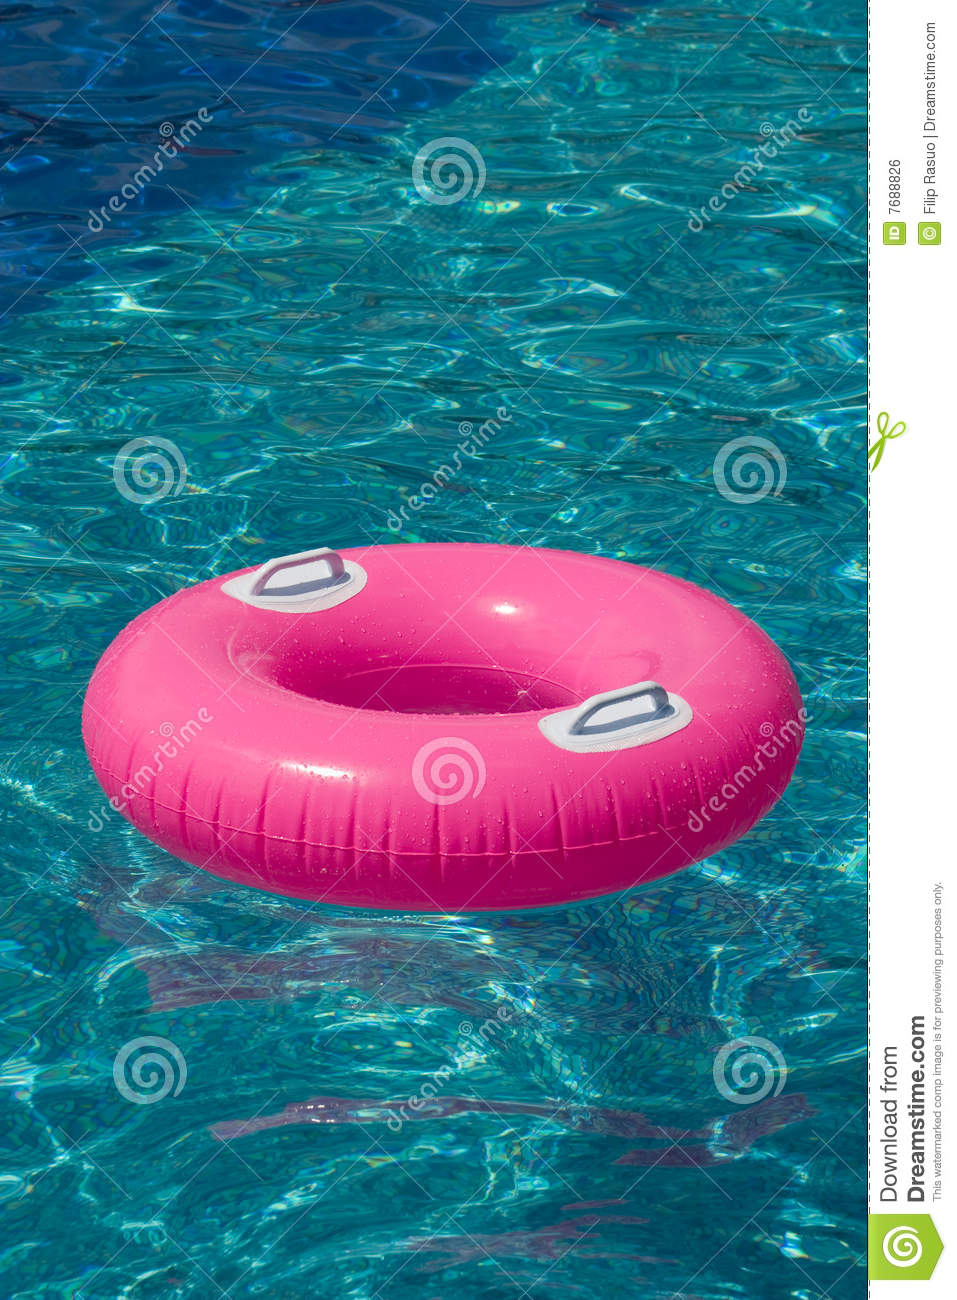 Rubber Swimming Pools : Pink rubber ring in the swimming pool stock image